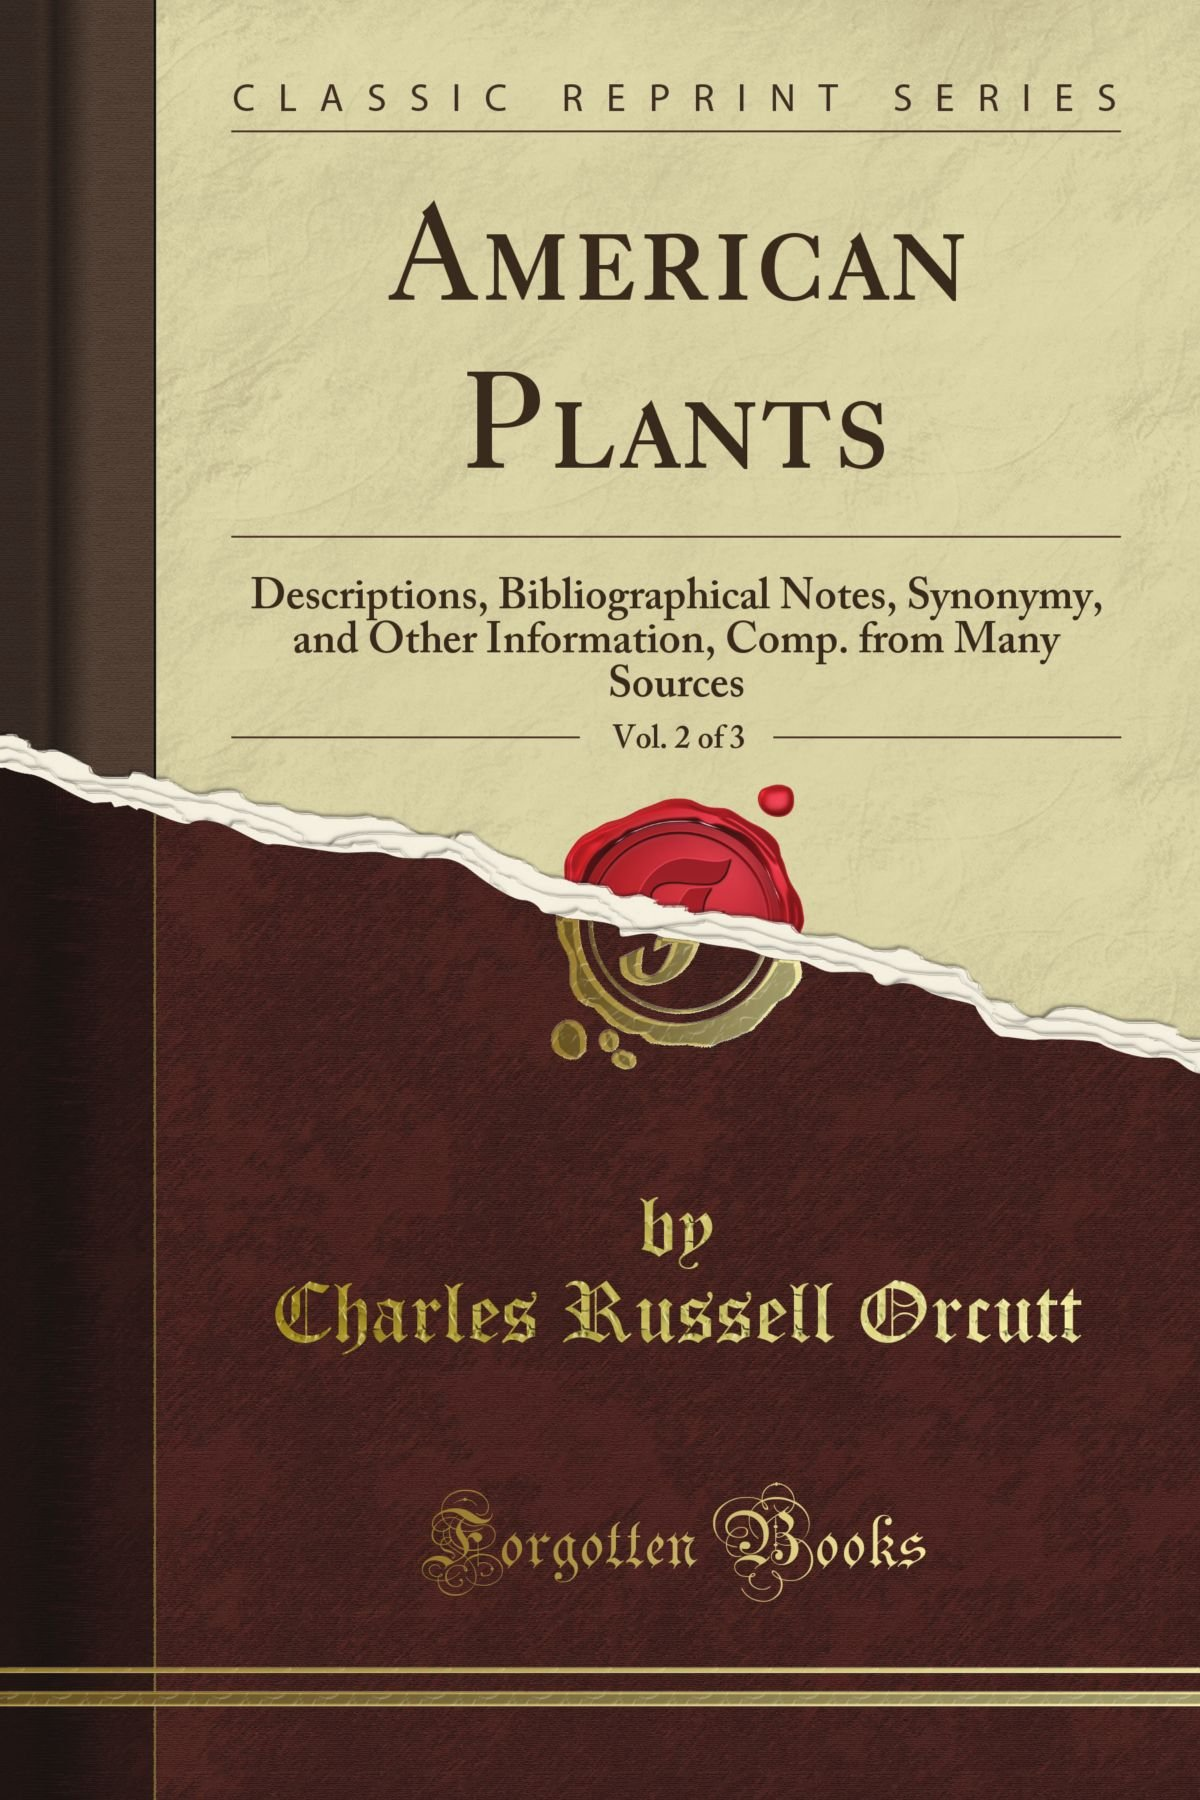 Download American Plants, Vol. 2 of 3: Descriptions, Bibliographical Notes, Synonymy, and Other Information, Comp. from Many Sources (Classic Reprint) ebook